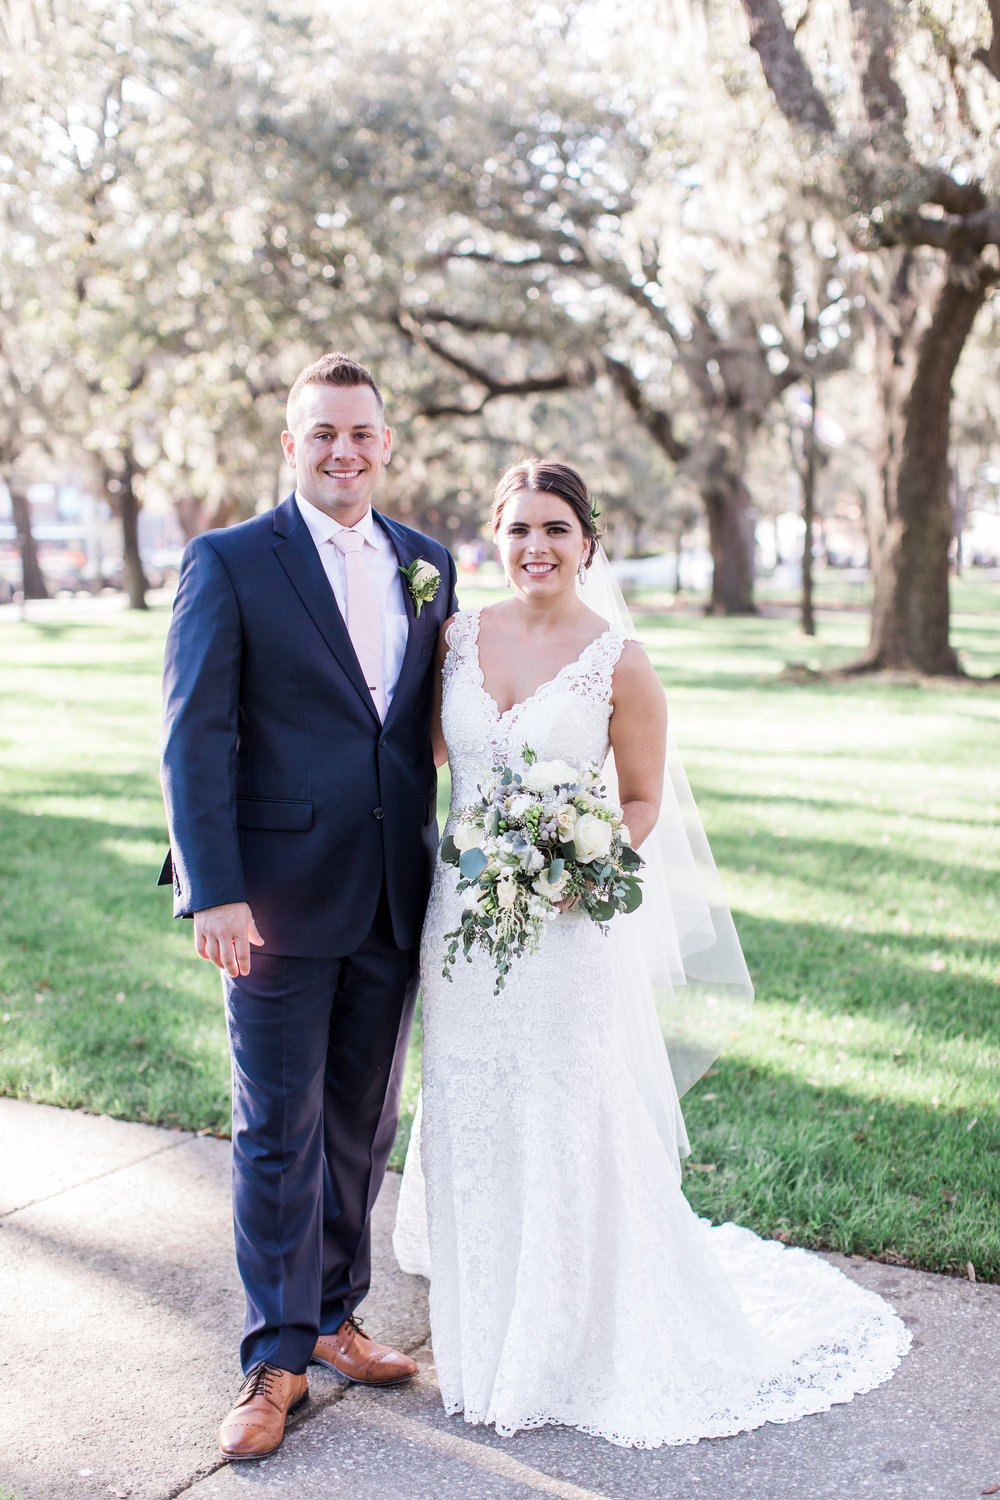 apt-b-photography-Savannah-wedding-photographer-savannah-engagement-photographer-historic-savannah-engagement-charles-h-morris-center-wedding-savannah-weddings-17.JPG